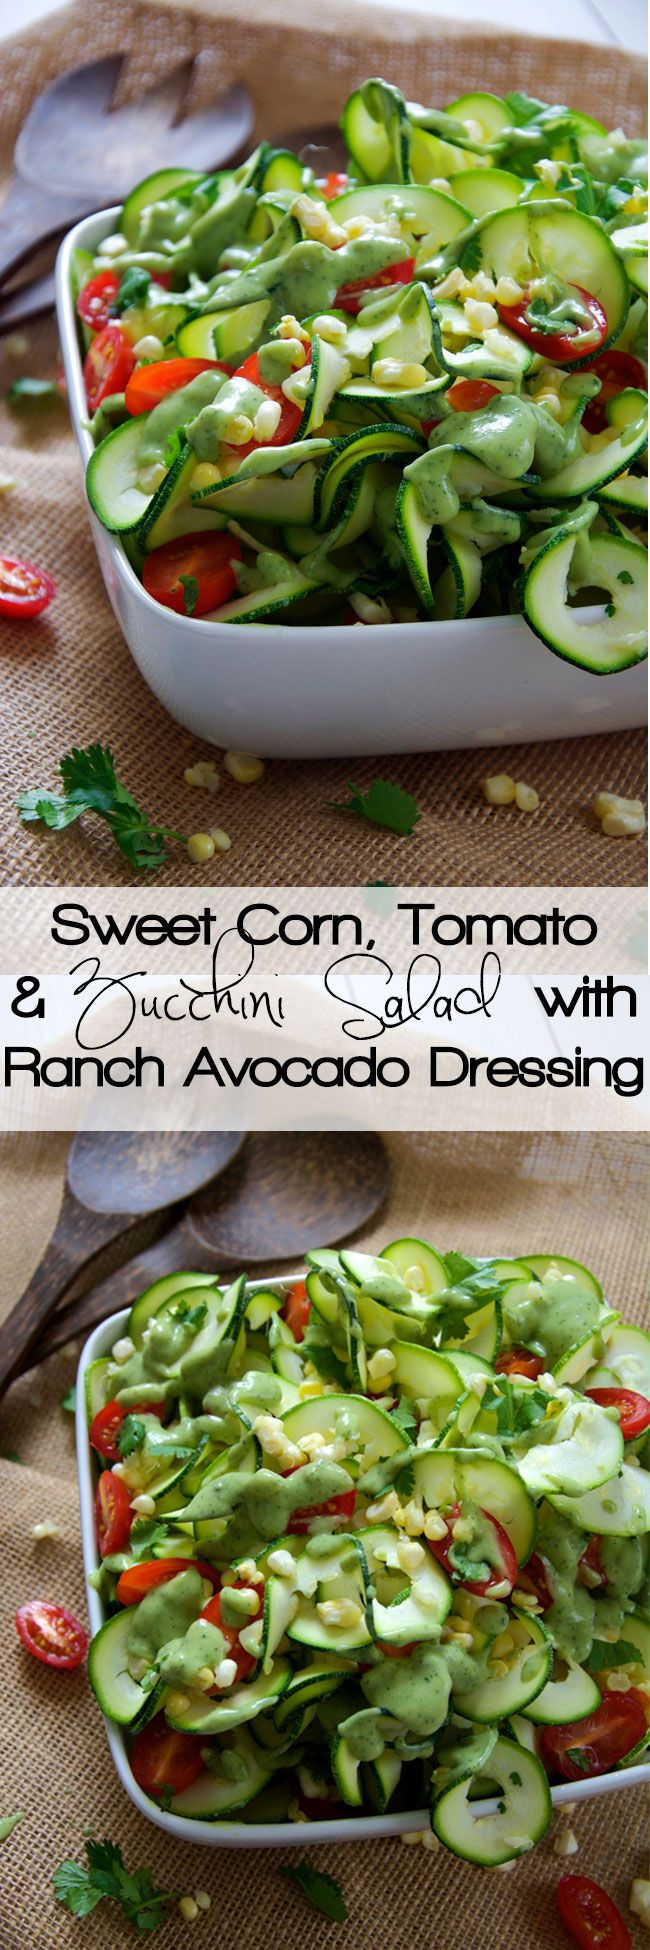 Fresh sweet corn, juicy cherry tomatoes and spiraled zucchini noodles are mixed and topped with a three ingredient dressing of creamy avocado, ranch seasoning and almond milk! A simple, raw salad that makes the most of end summer ingredients!